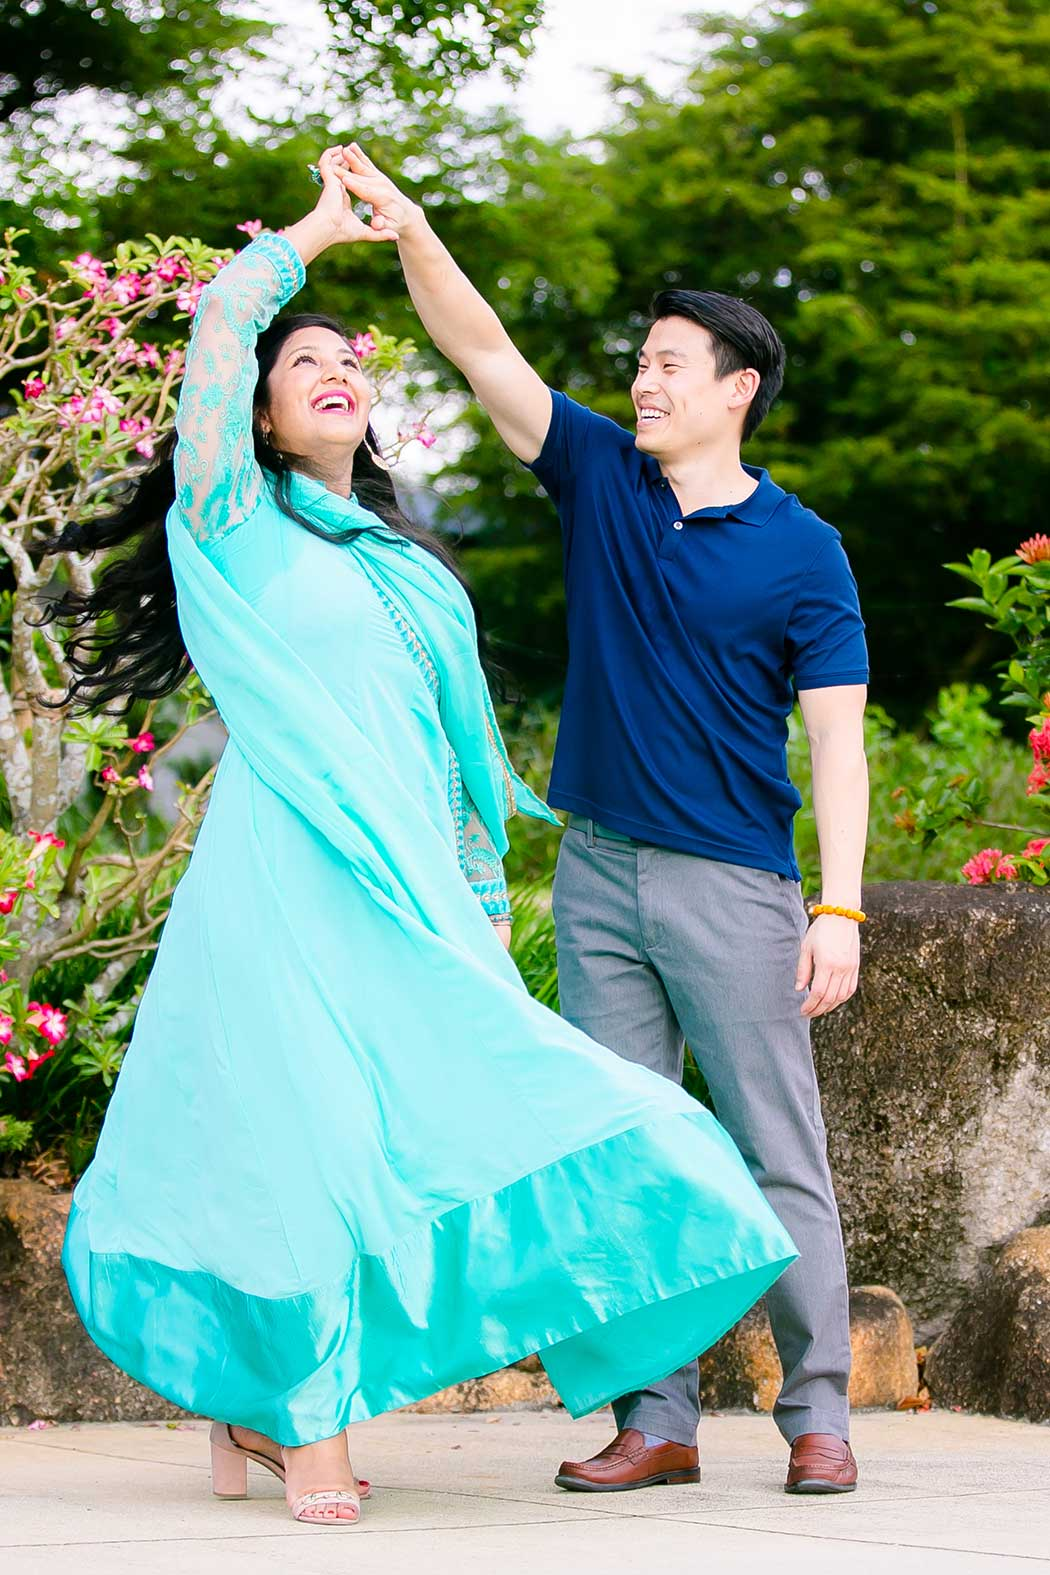 engagement photography at morikami | couple dancing during engagement photoshoot | dancing at morikami japanese gardens